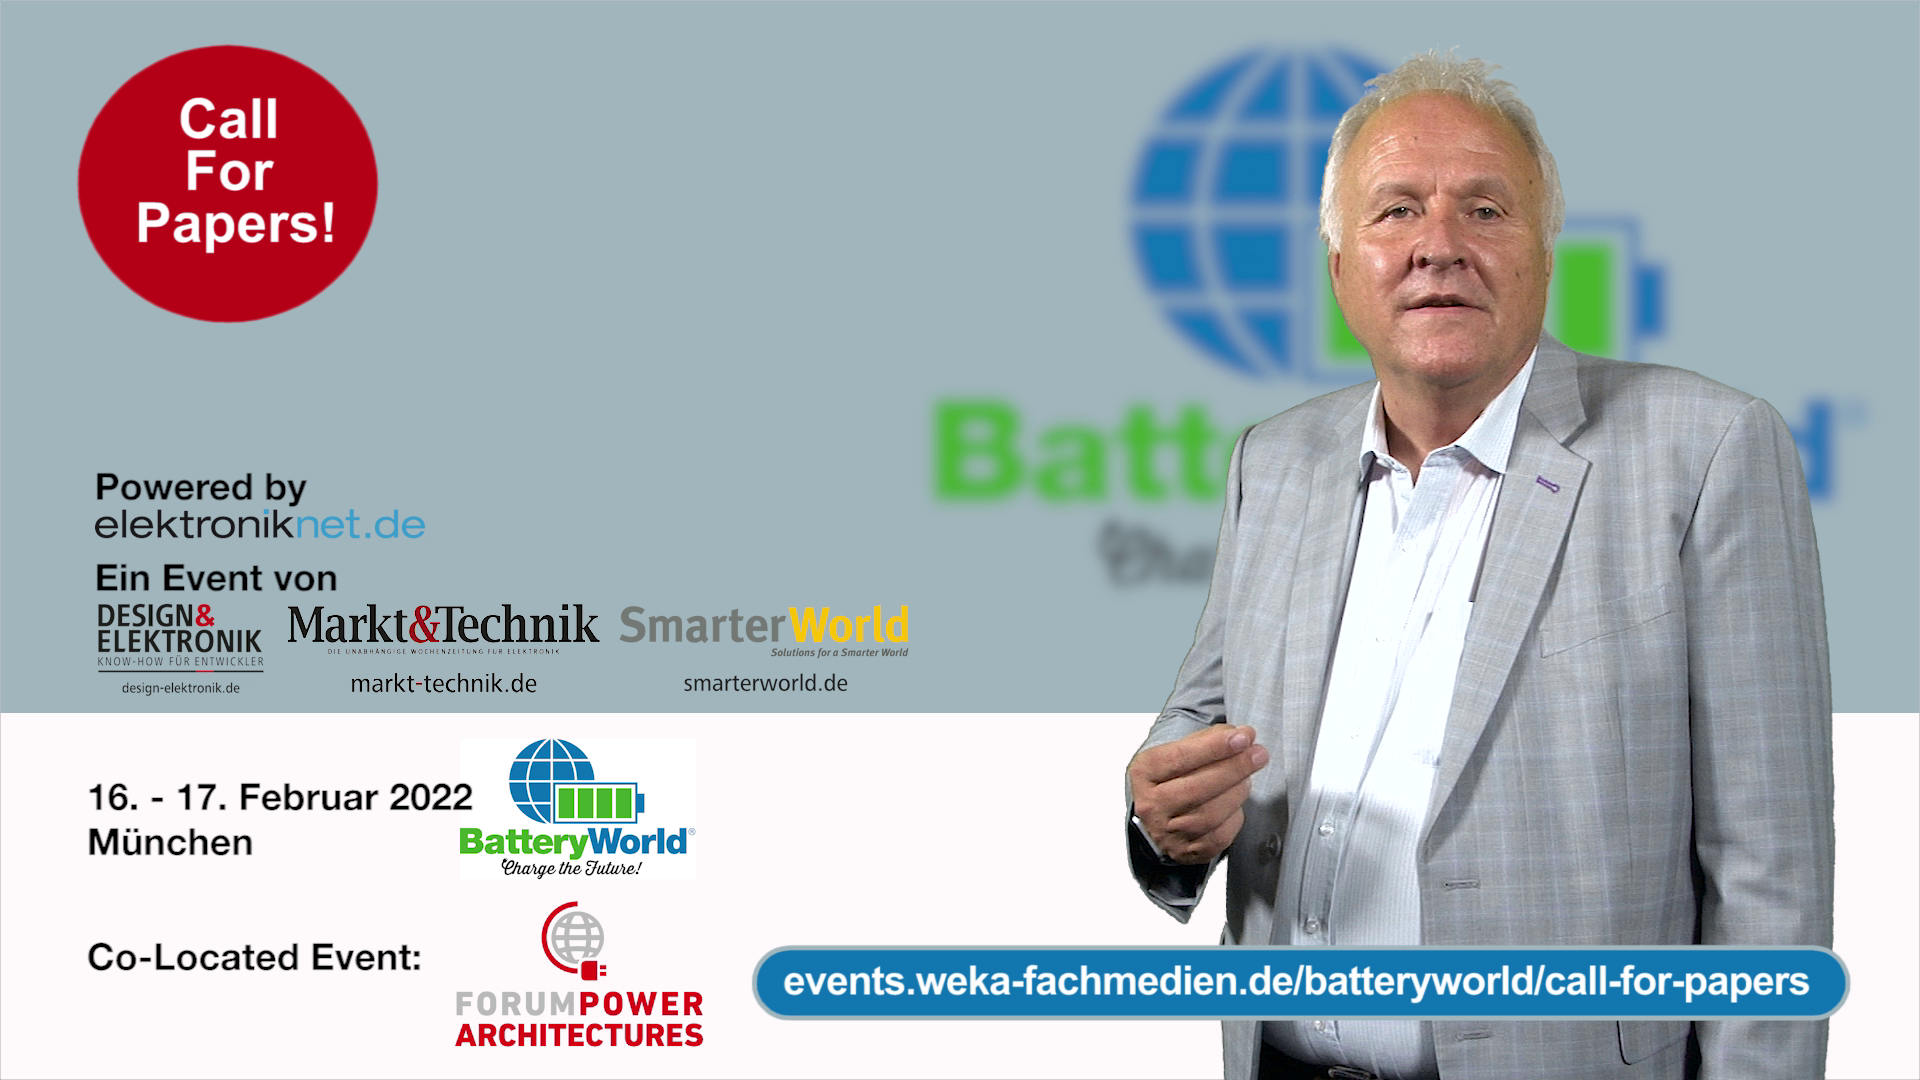 Call for Papers für die BatteryWorld 2022